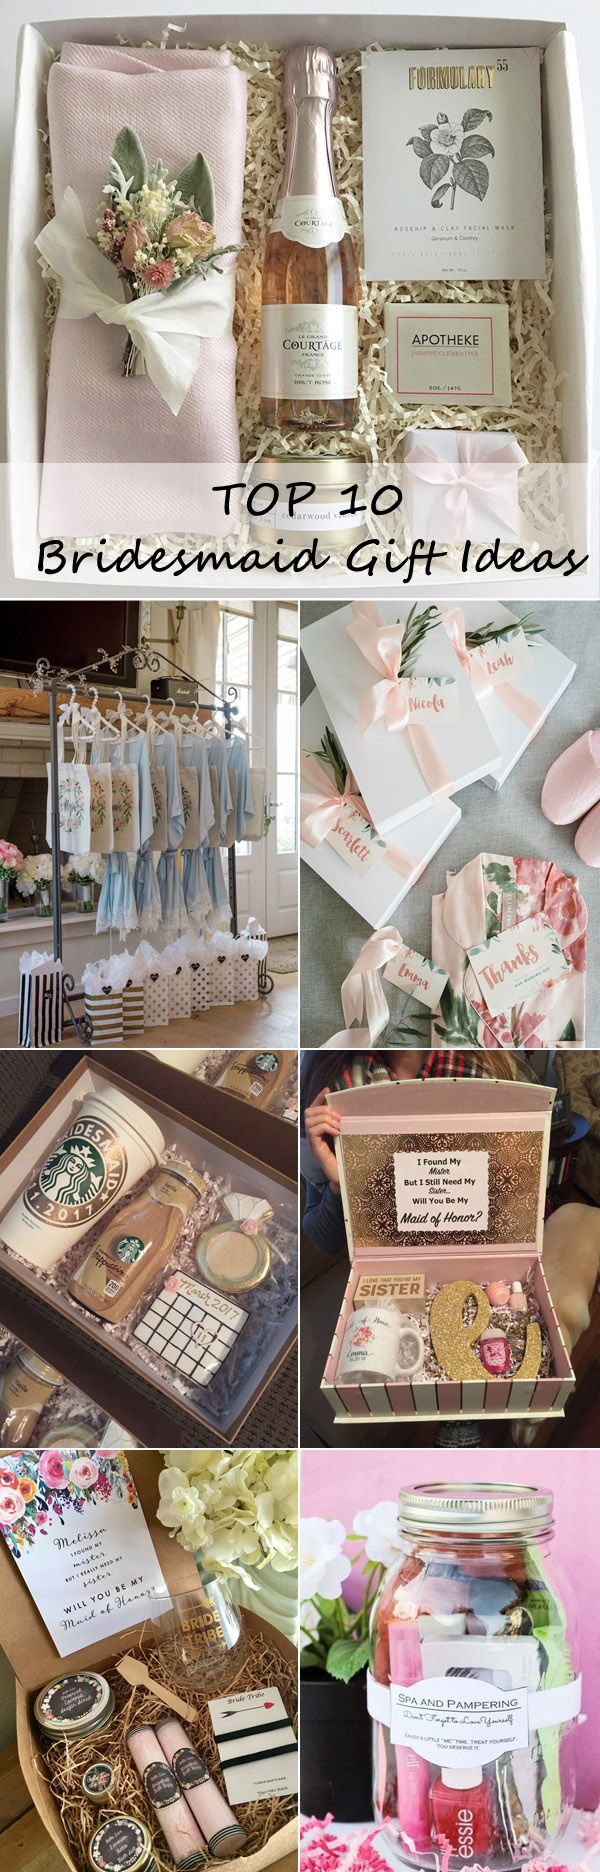 Bridesmaid Gifts Cheap | Top 10 Bridesmaid Gift Ideas Your Girls Will Love